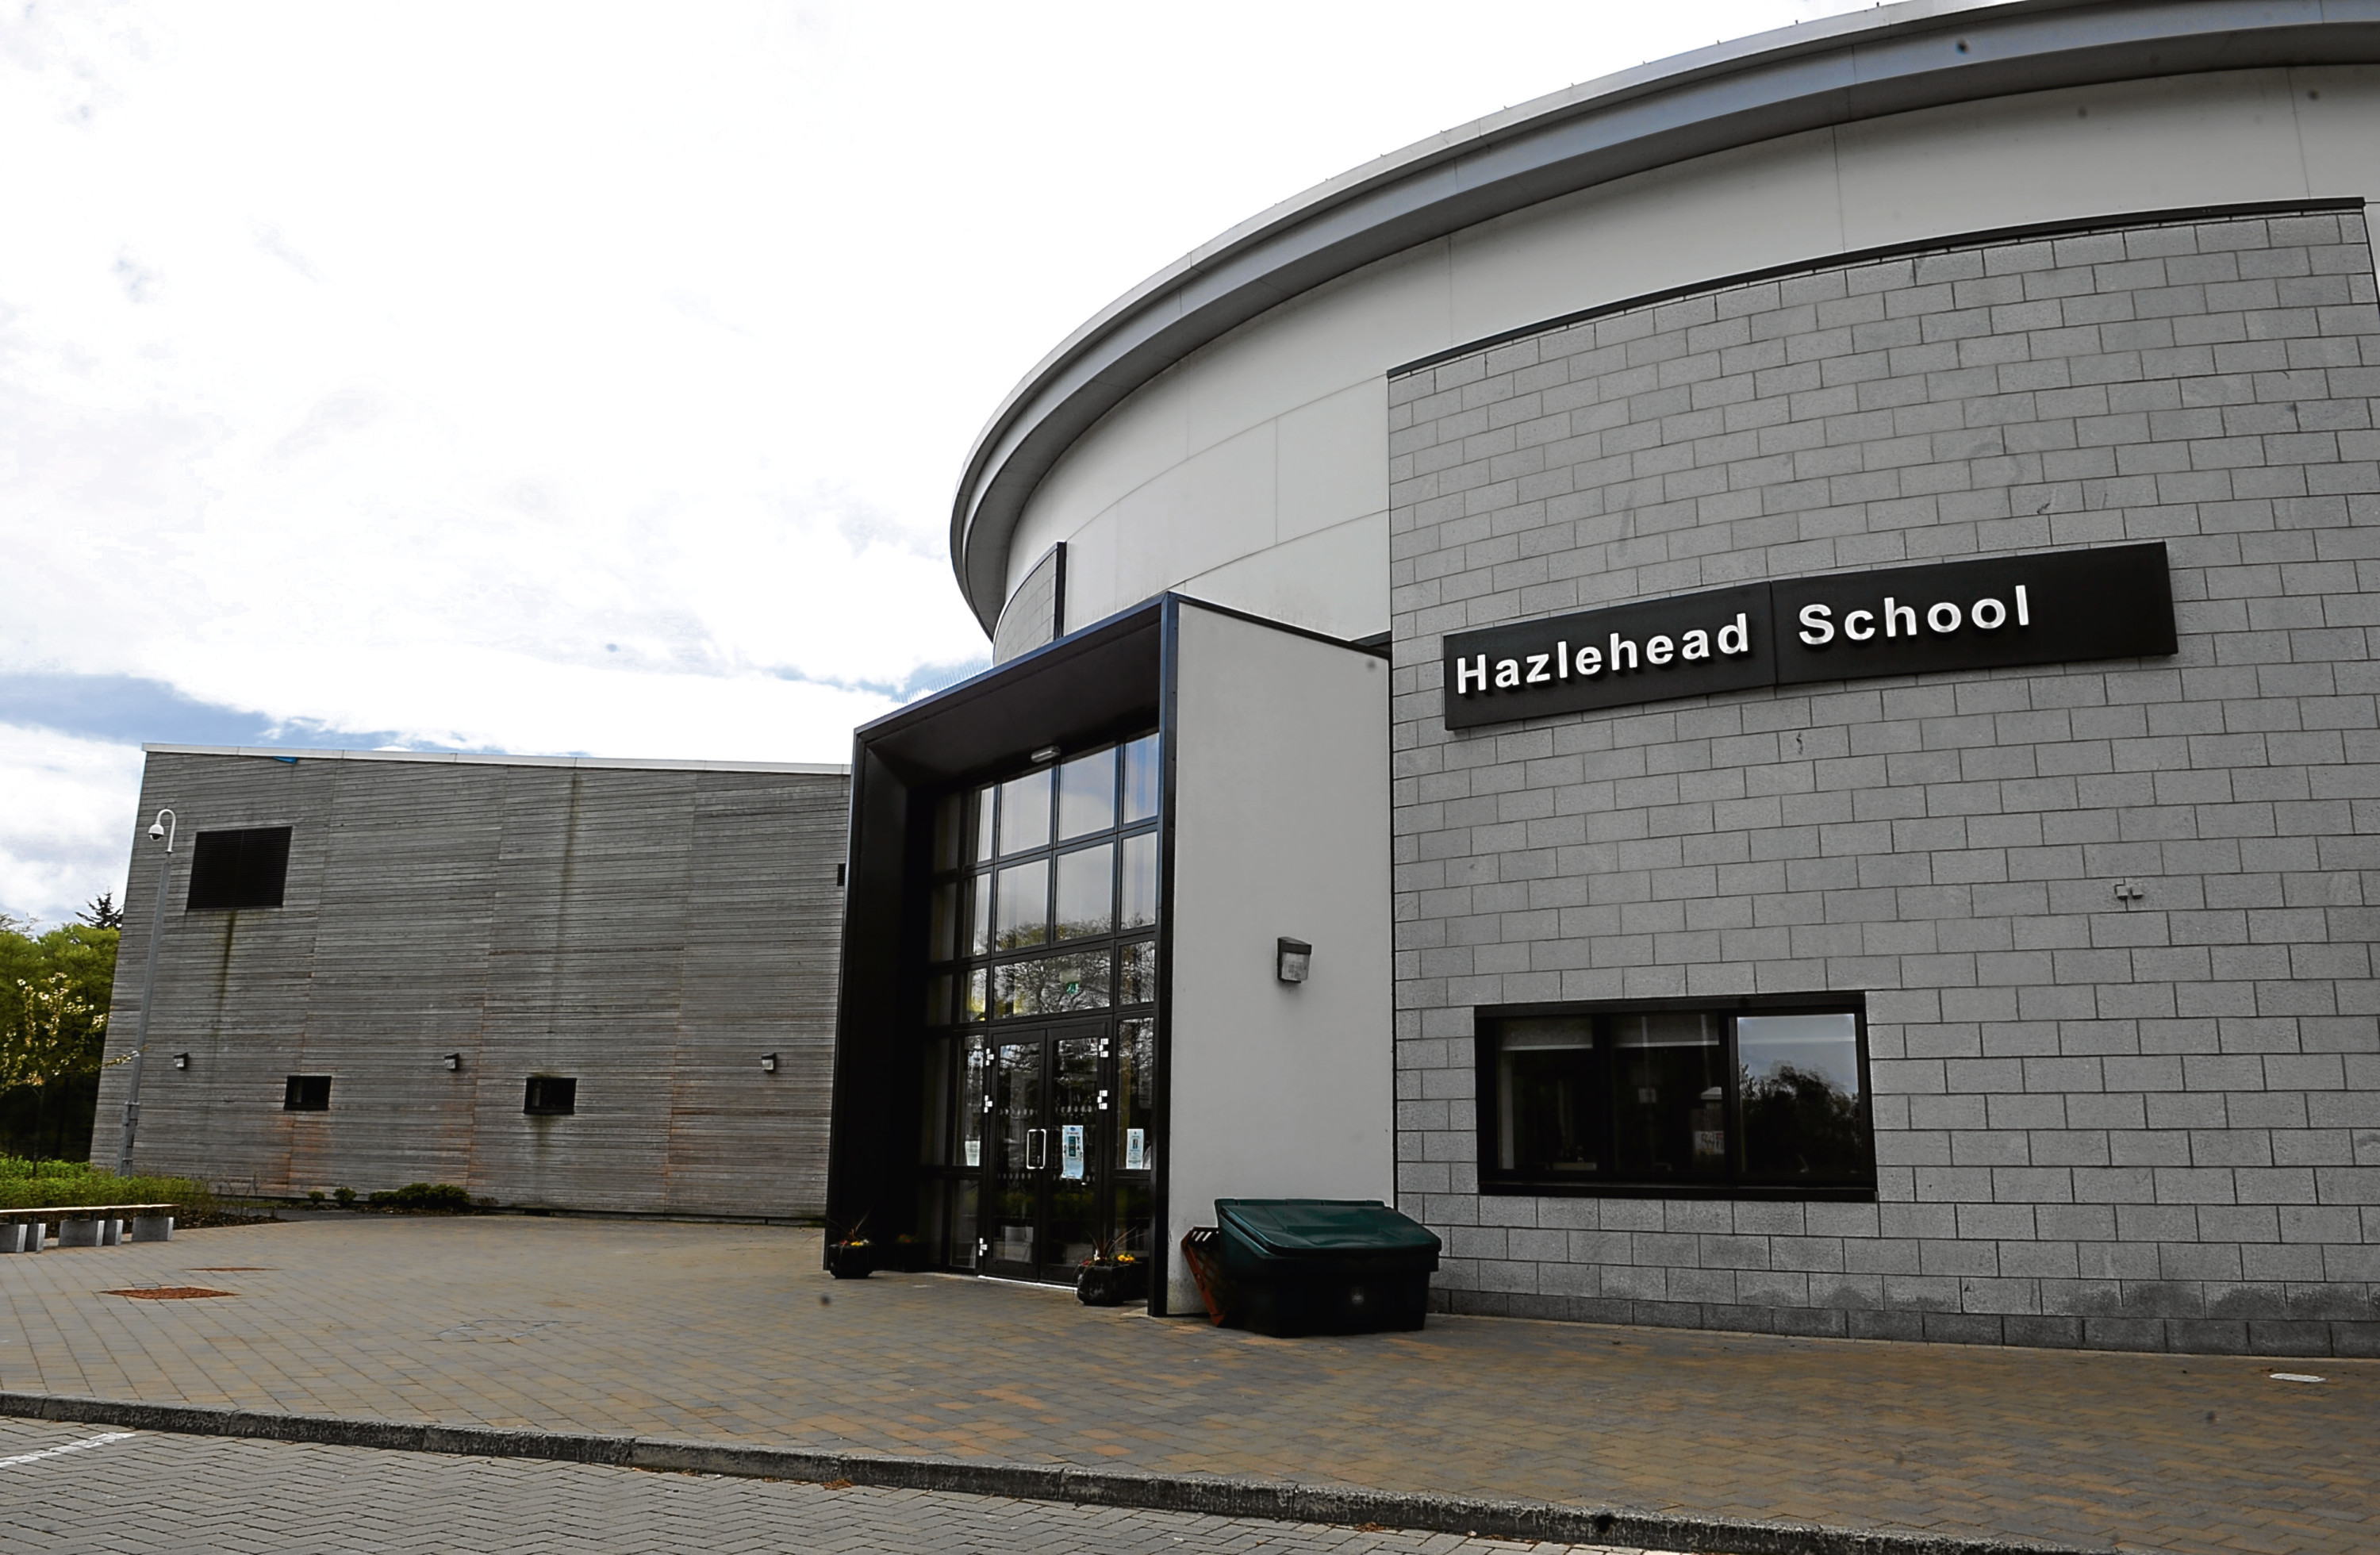 The pupil was reported missing from Hazlehead Primary